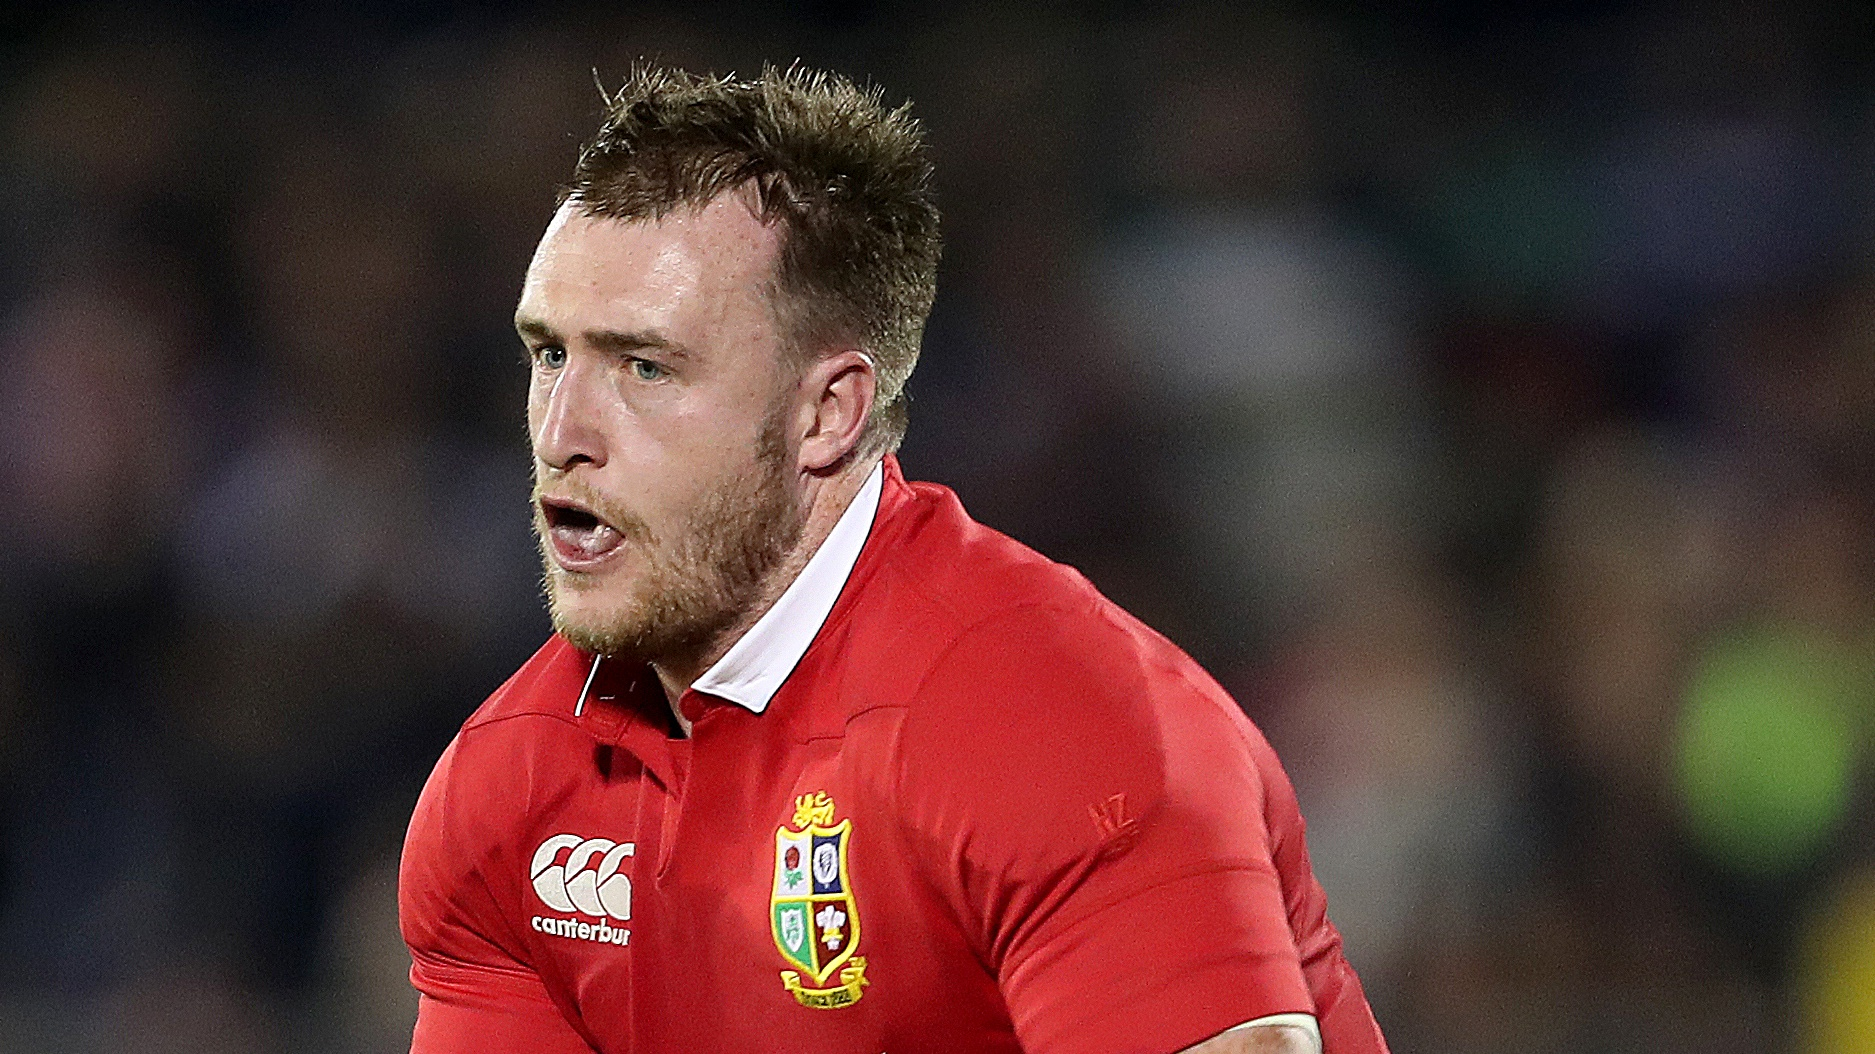 Lions tour: Fullback Stuart Hogg out for remainder of tour with injury